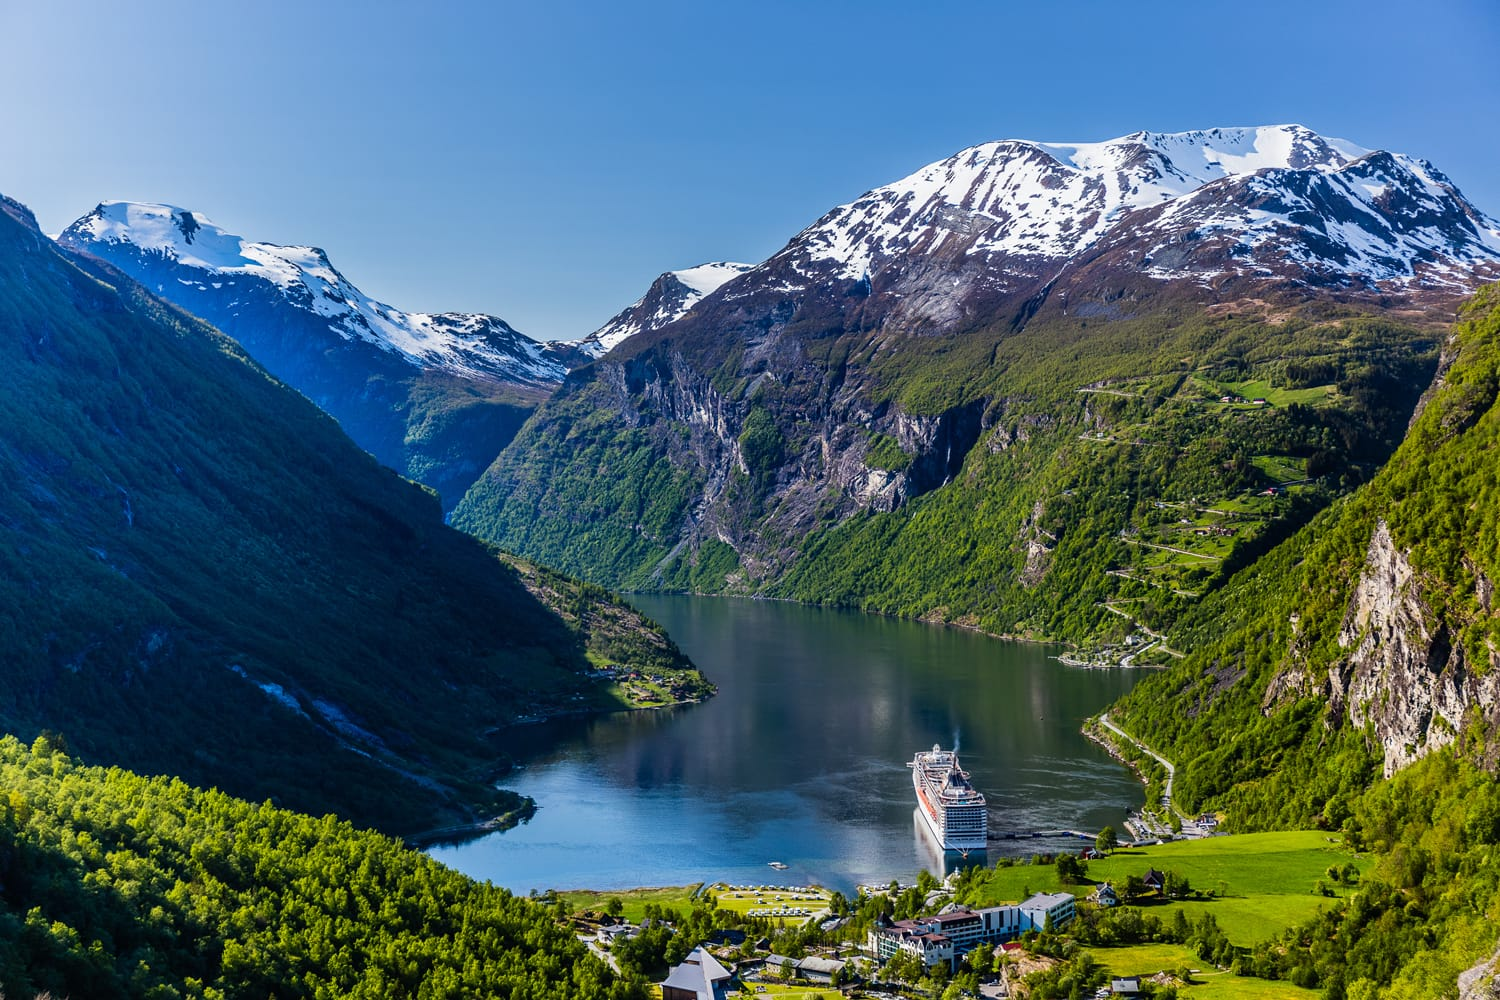 Geirangerfjord with a ship in a port from above, with mountain peaks covered with snow